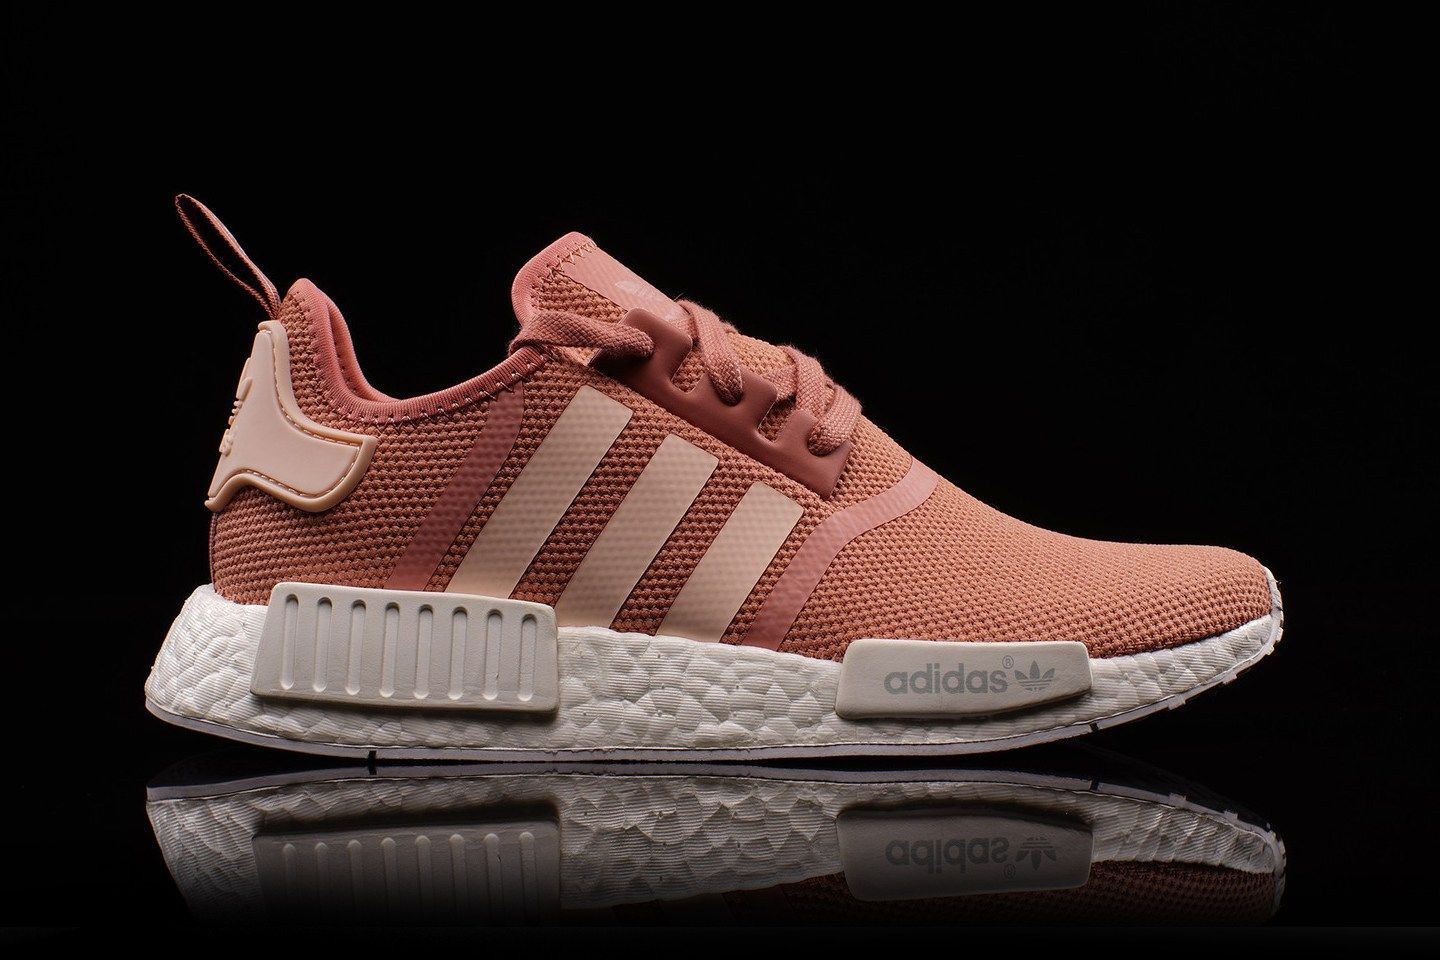 be3eb1bed80ac rose gold pink adidas shoes womens adidas nmd r1 casual shoes ...